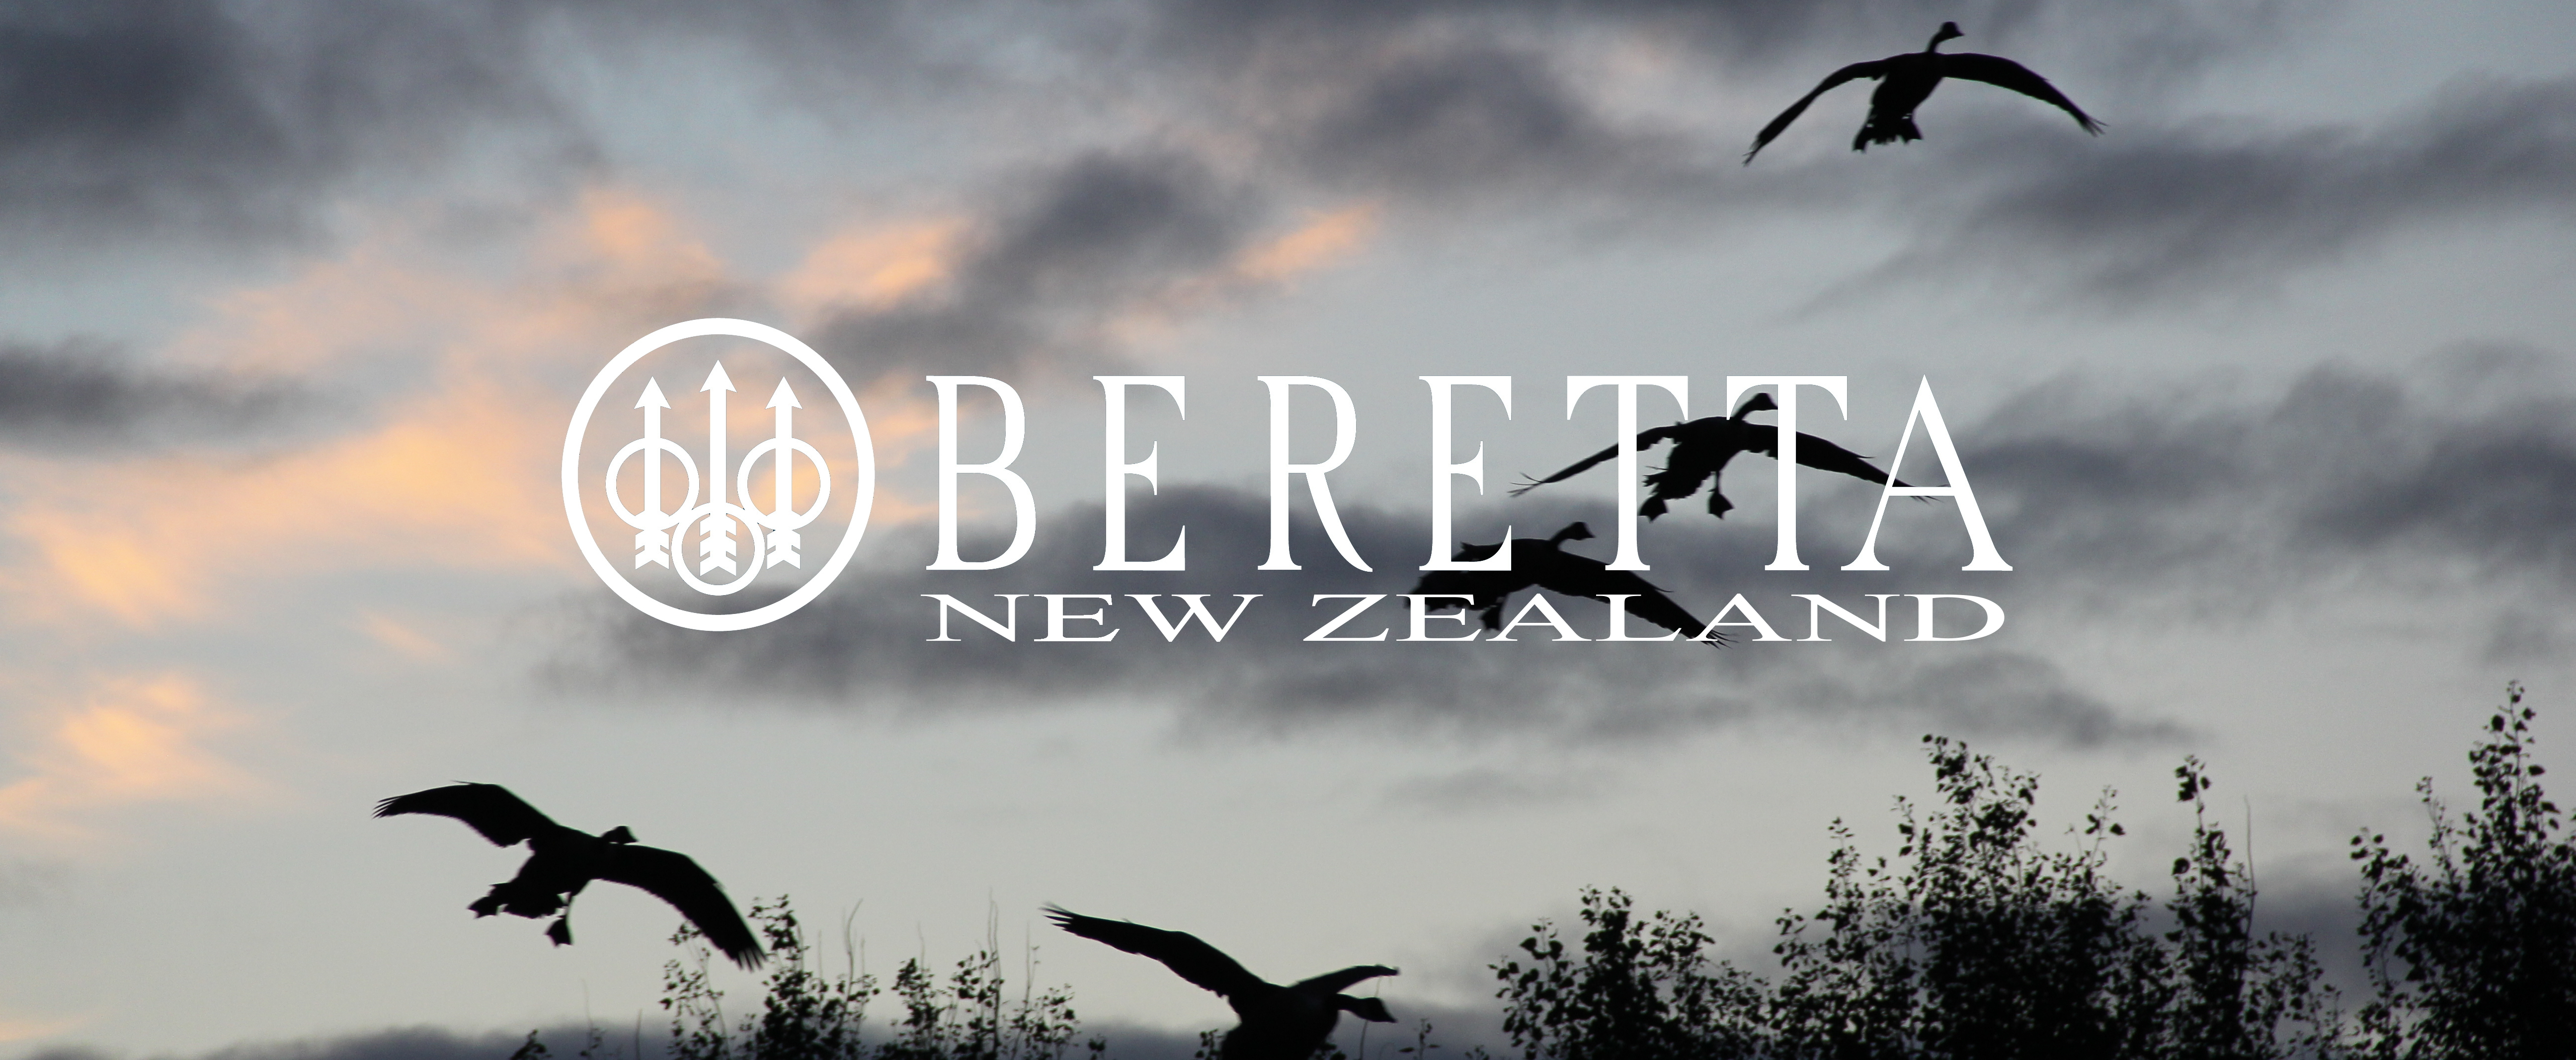 Beretta New Zealand Our Story